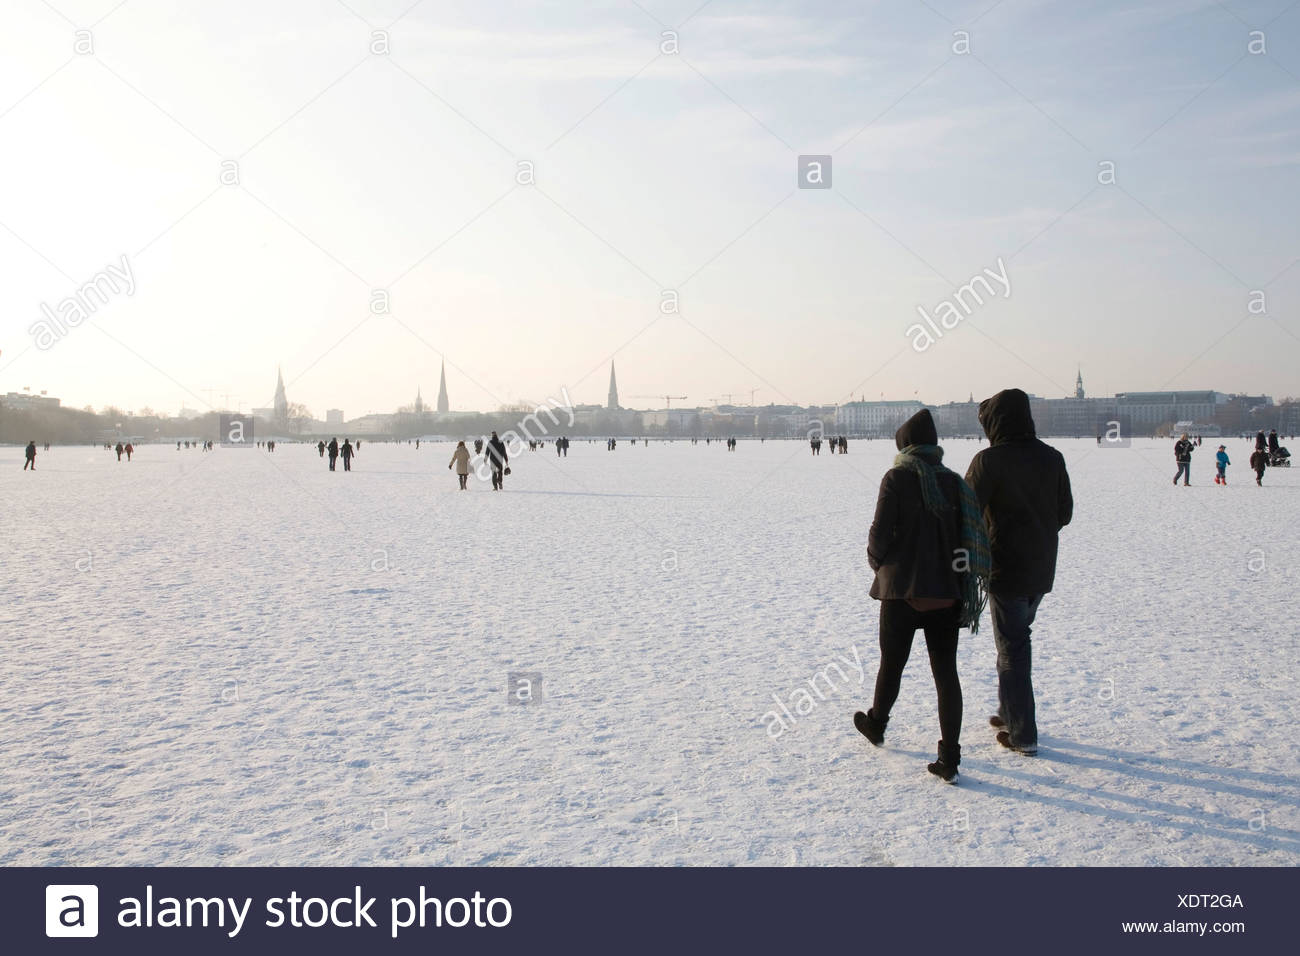 Walkers on the frozen Aussenalster or Outer Alster Lake, Hamburg, Germany, Europe - Stock Image